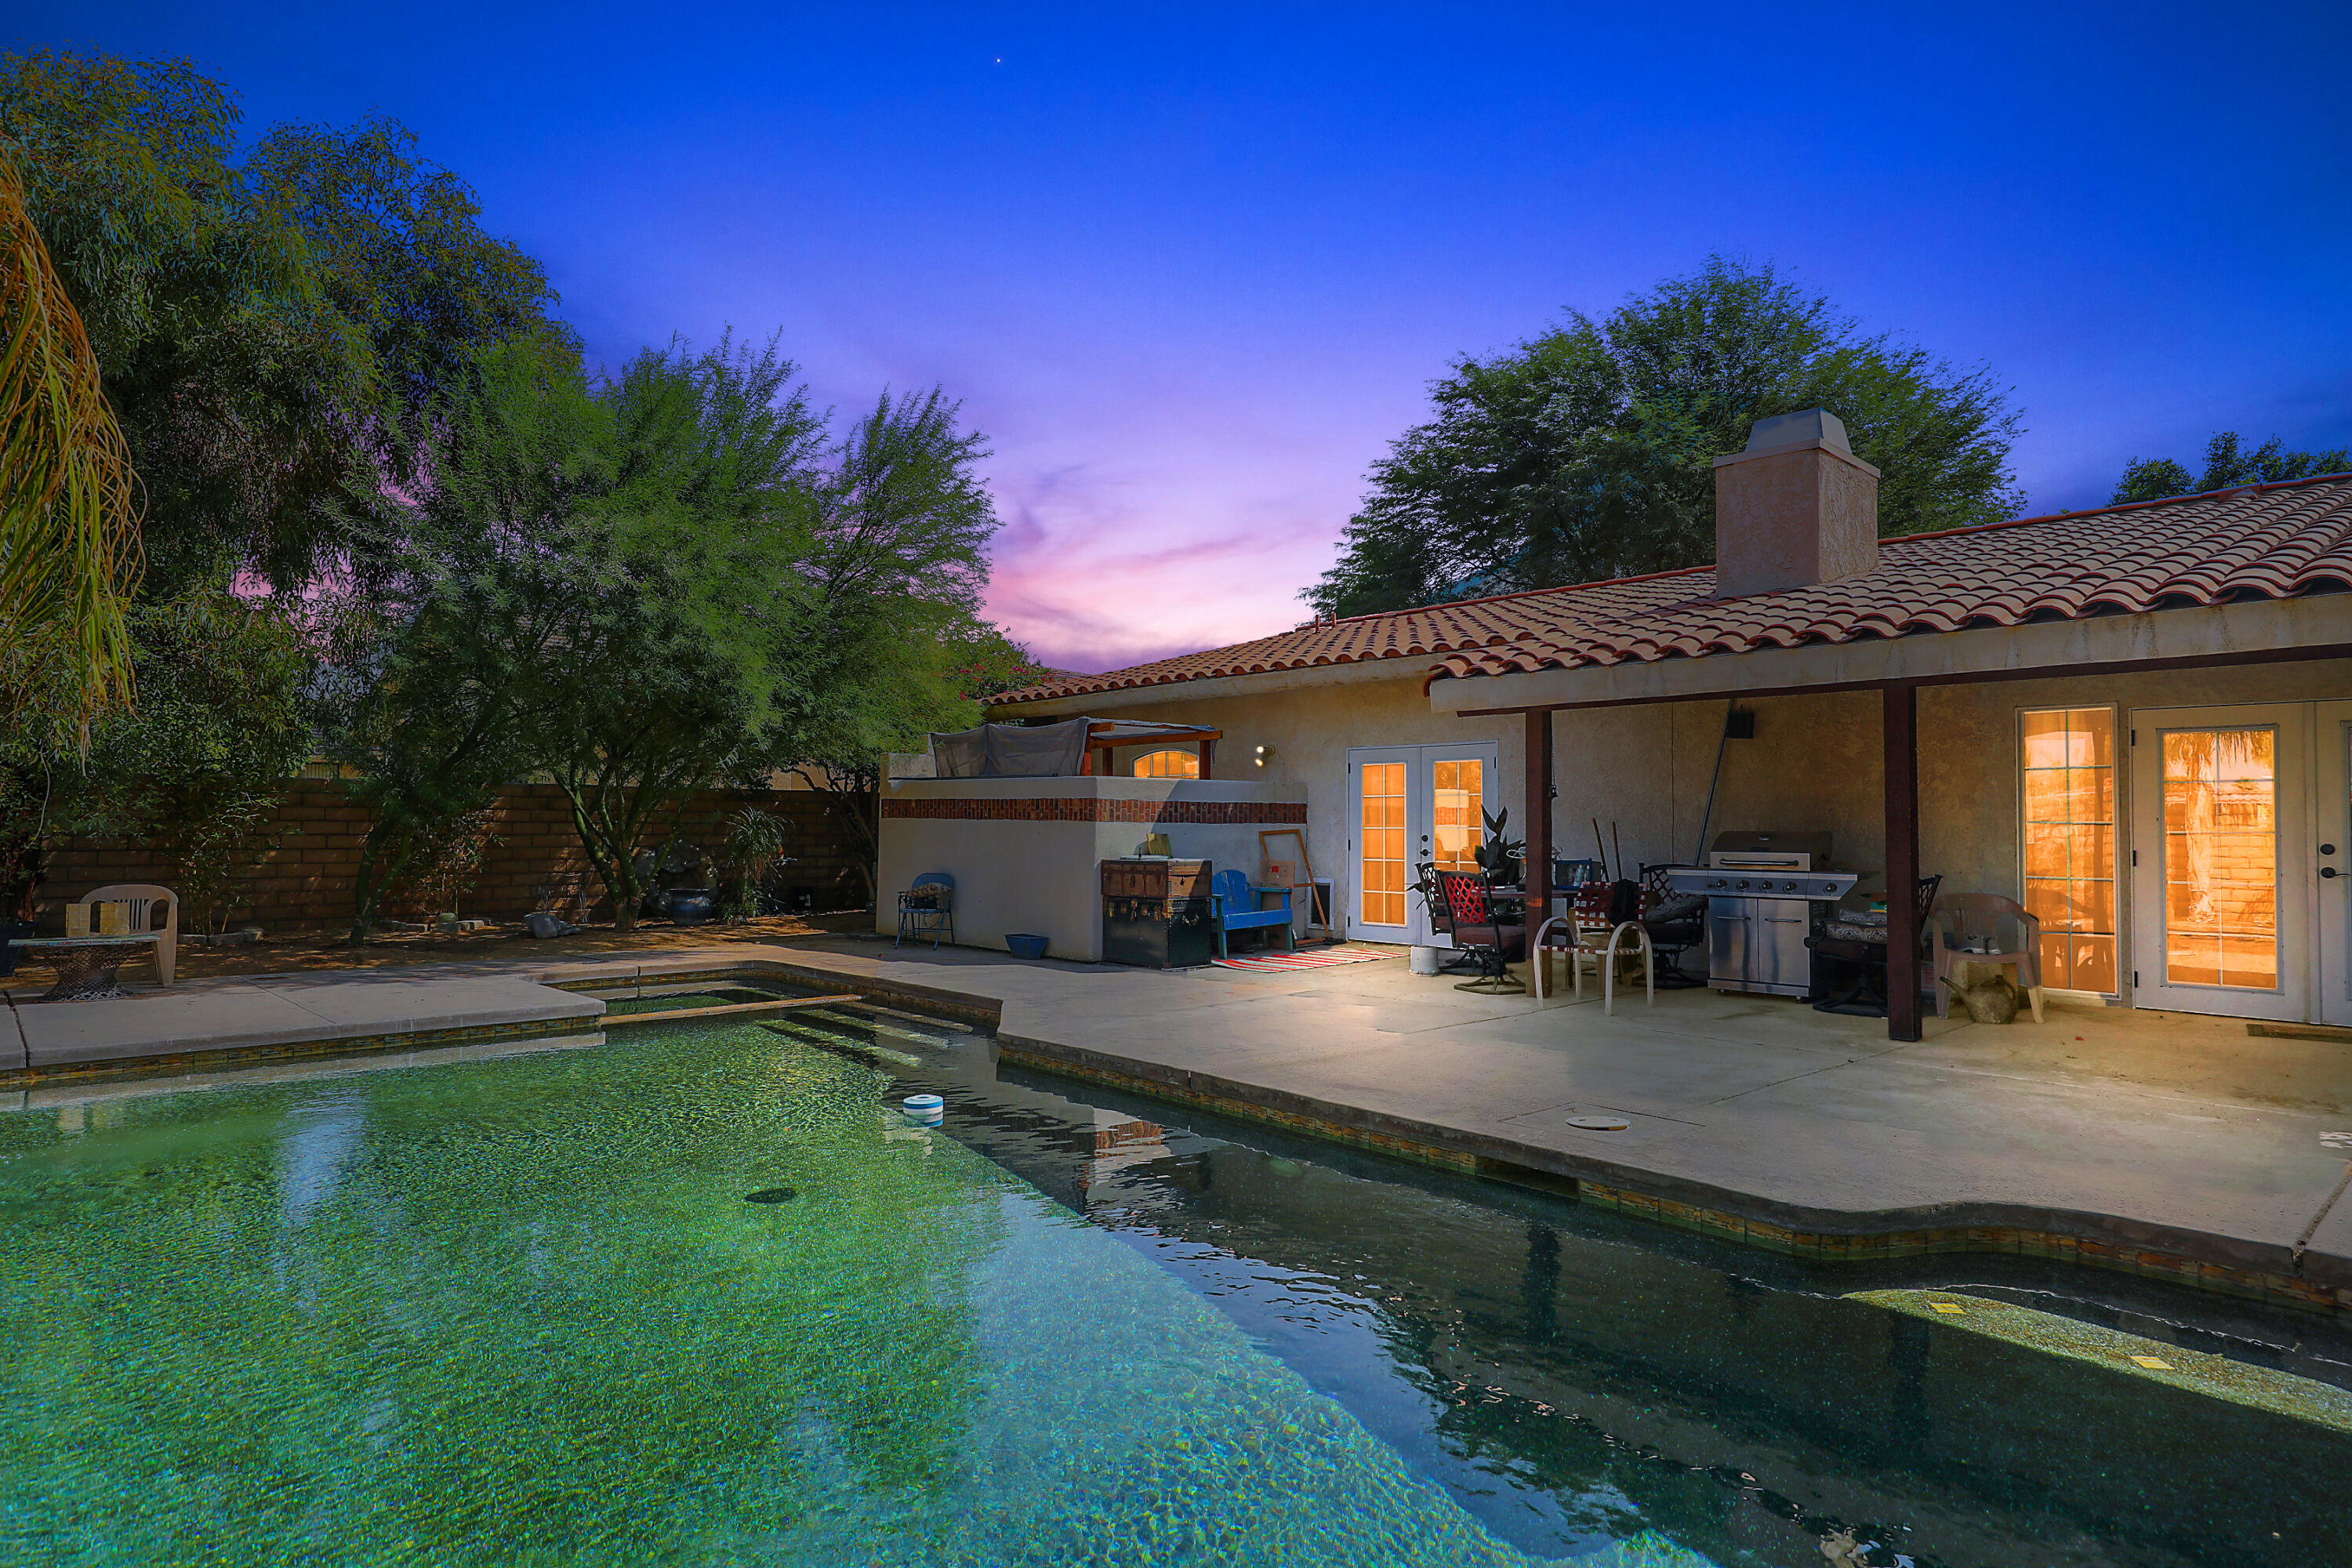 Thoughtfully remodeled Hacienda located inside the guarded gates of Bermuda Dunes Country Club. Enter through the wood-gated bell house (180 year old mission bell) into the expansive, private  front courtyard  area with fountain, mature landscape and covered tiled patio.   This charming home with 3 bedrooms, 2 bathrooms and over 1,700 sq.ft. of living space - you're sure to be swept away!!  Upgraded kitchen with stunning slab granite counters, custom cabinets and stainless steel appliances is open to a true GREAT ROOM with a cozy fireplace to give a warm glow to cooler winter evenings.   The primary bedroom has a slider to the rear patio and boasts a remodeled bathroom with separate tub and spacious walk-in shower.   The second bathroom with tiled shower has also been remodeled.     Step outside to relax and enjoy the refreshing Pebble-Tec pool and soothing spa.    The rear yard is expansive and has plenty of possibilities.   There is an automatic gate for the driveway and plenty of guest parking in front of this special home.    You will love living in this well maintained community with diverse homes and low HOA of only $199 a month, which includes 24-hour security and cable TV & internet with Spectrum (2 boxes with Showtime & HBO!!).   Owner will look at all offers on SATURDAY, October 2 at 4 PM.